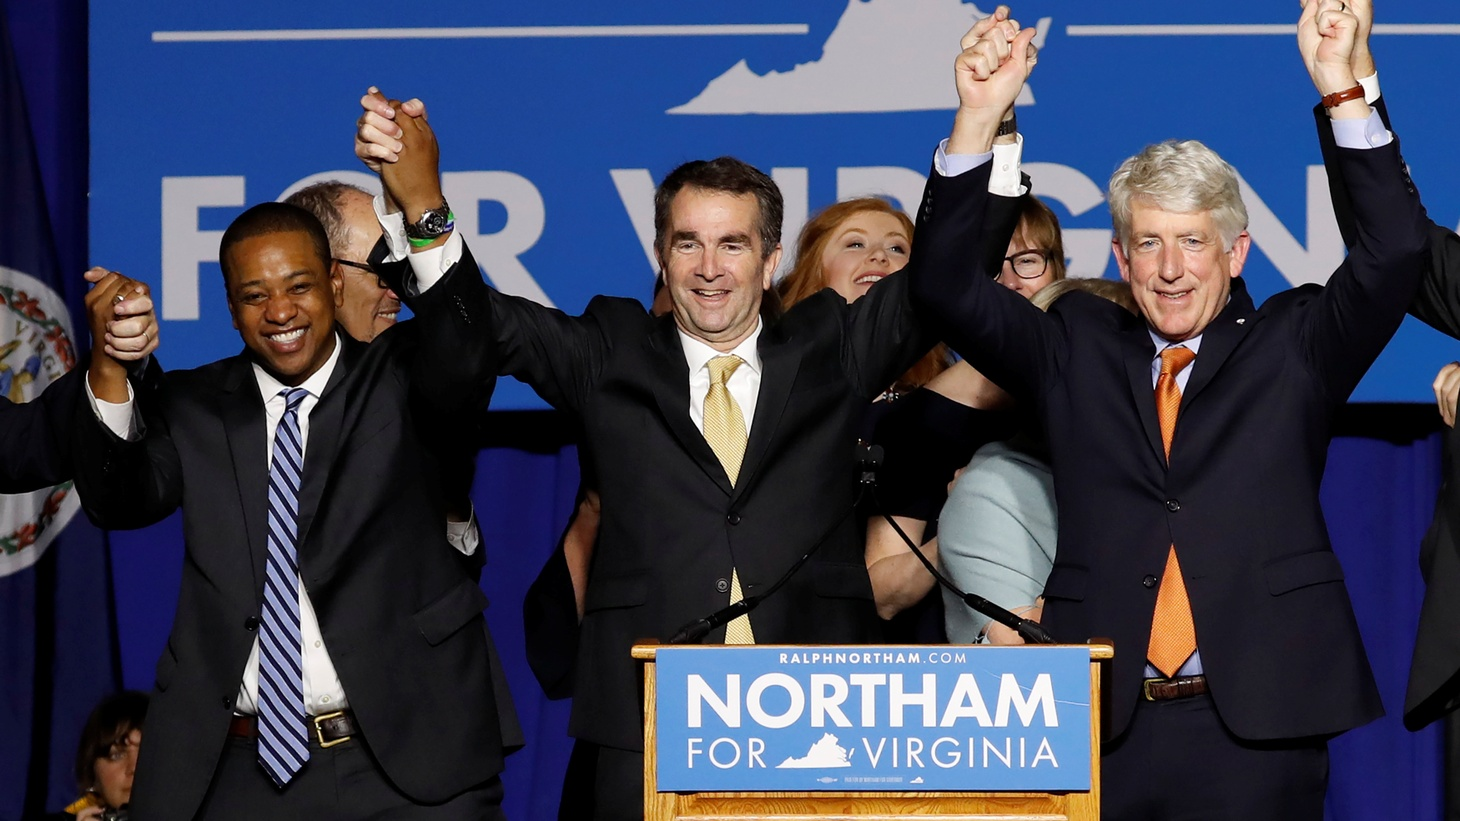 Virginia Governor Elect Ralph Northam (C) celebrates with Lt. Governor Elect Justin Fairfax and Attorney General Mark Herring at his election night rally on the campus of George Mason University in Fairfax, Virginia, November 7, 2017.